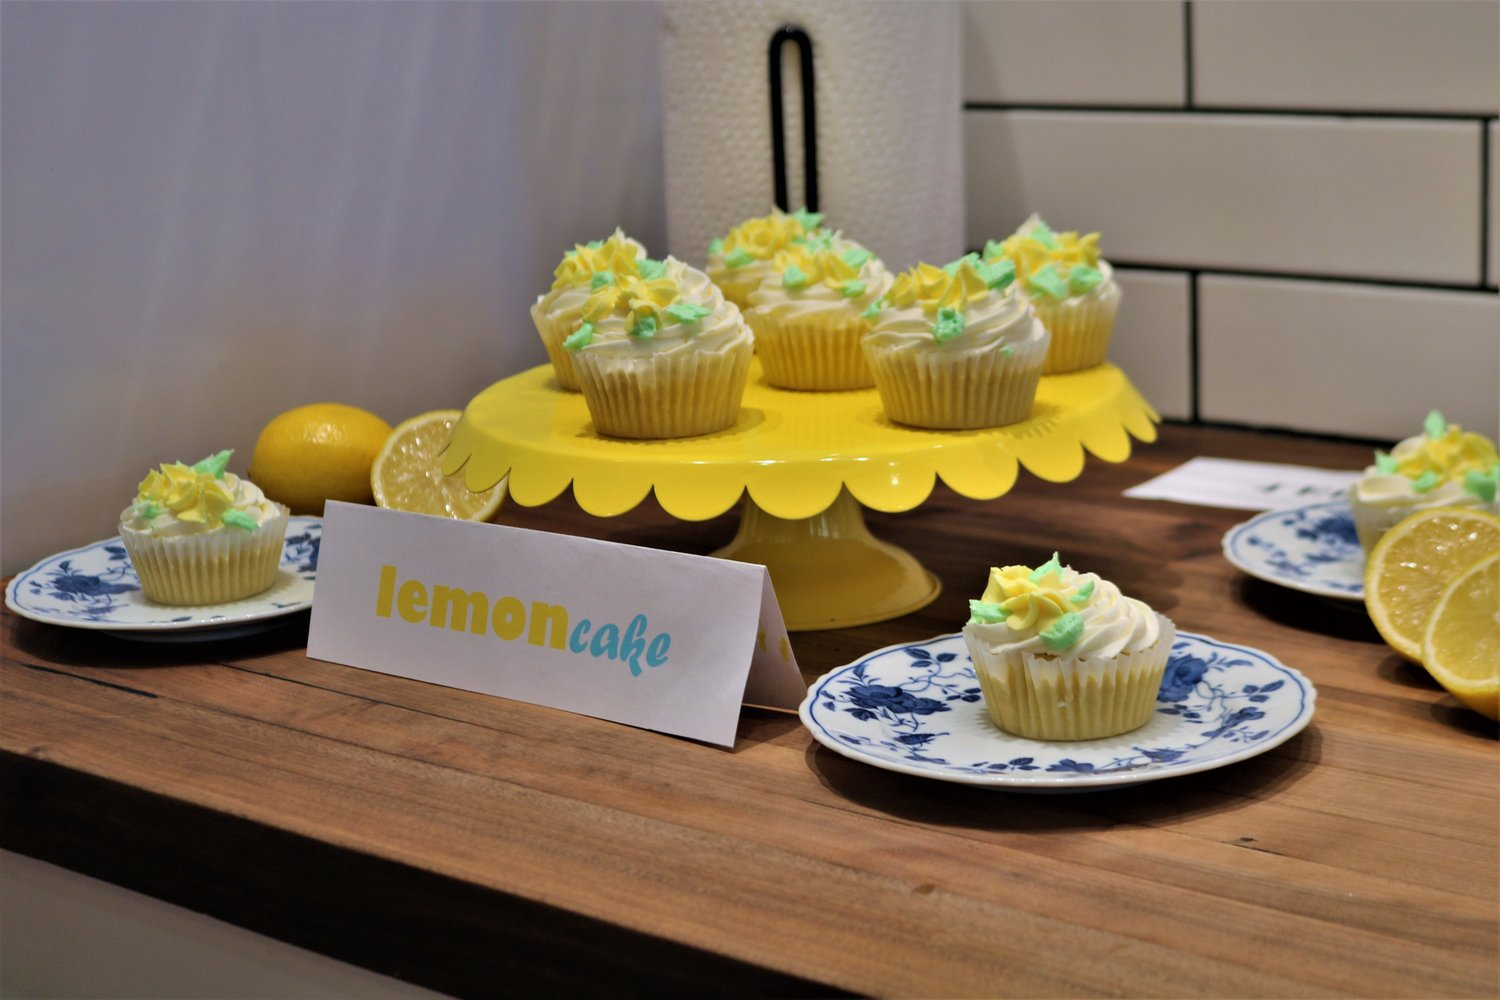 Elizabeth Vincent's delicate and vintage display of Lemon Cake cupcakes earned the second runner-up spot in the cupcake contest.